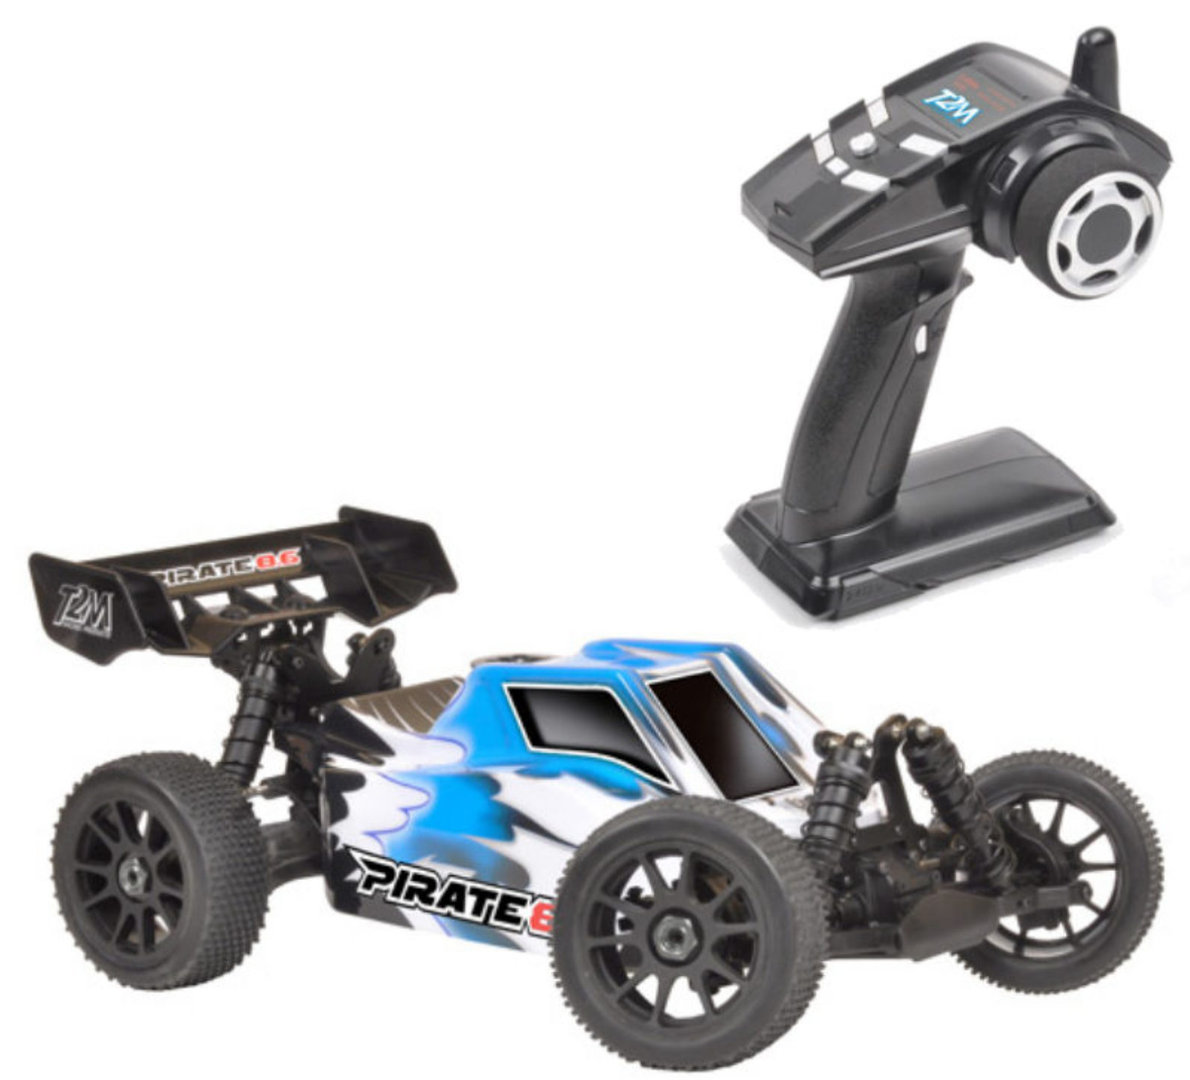 t2m pirate 8 6 4wd rc off road verbrenner buggy rtr fernsteuerung 3 5 ccm. Black Bedroom Furniture Sets. Home Design Ideas